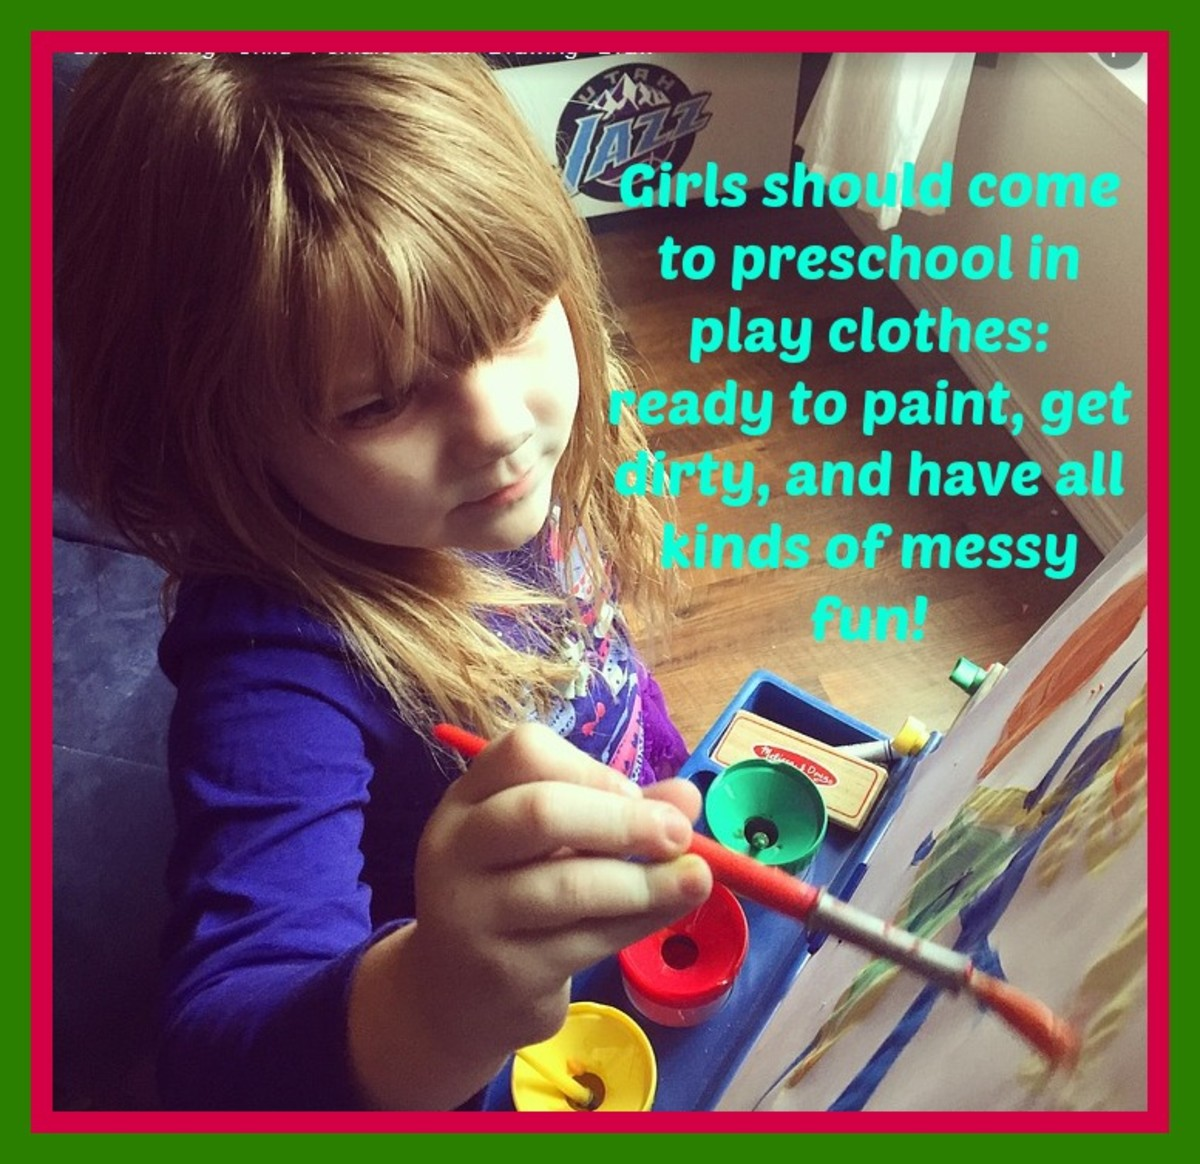 Girls should be doing messy projects at preschool, unencumbered by princess gowns.